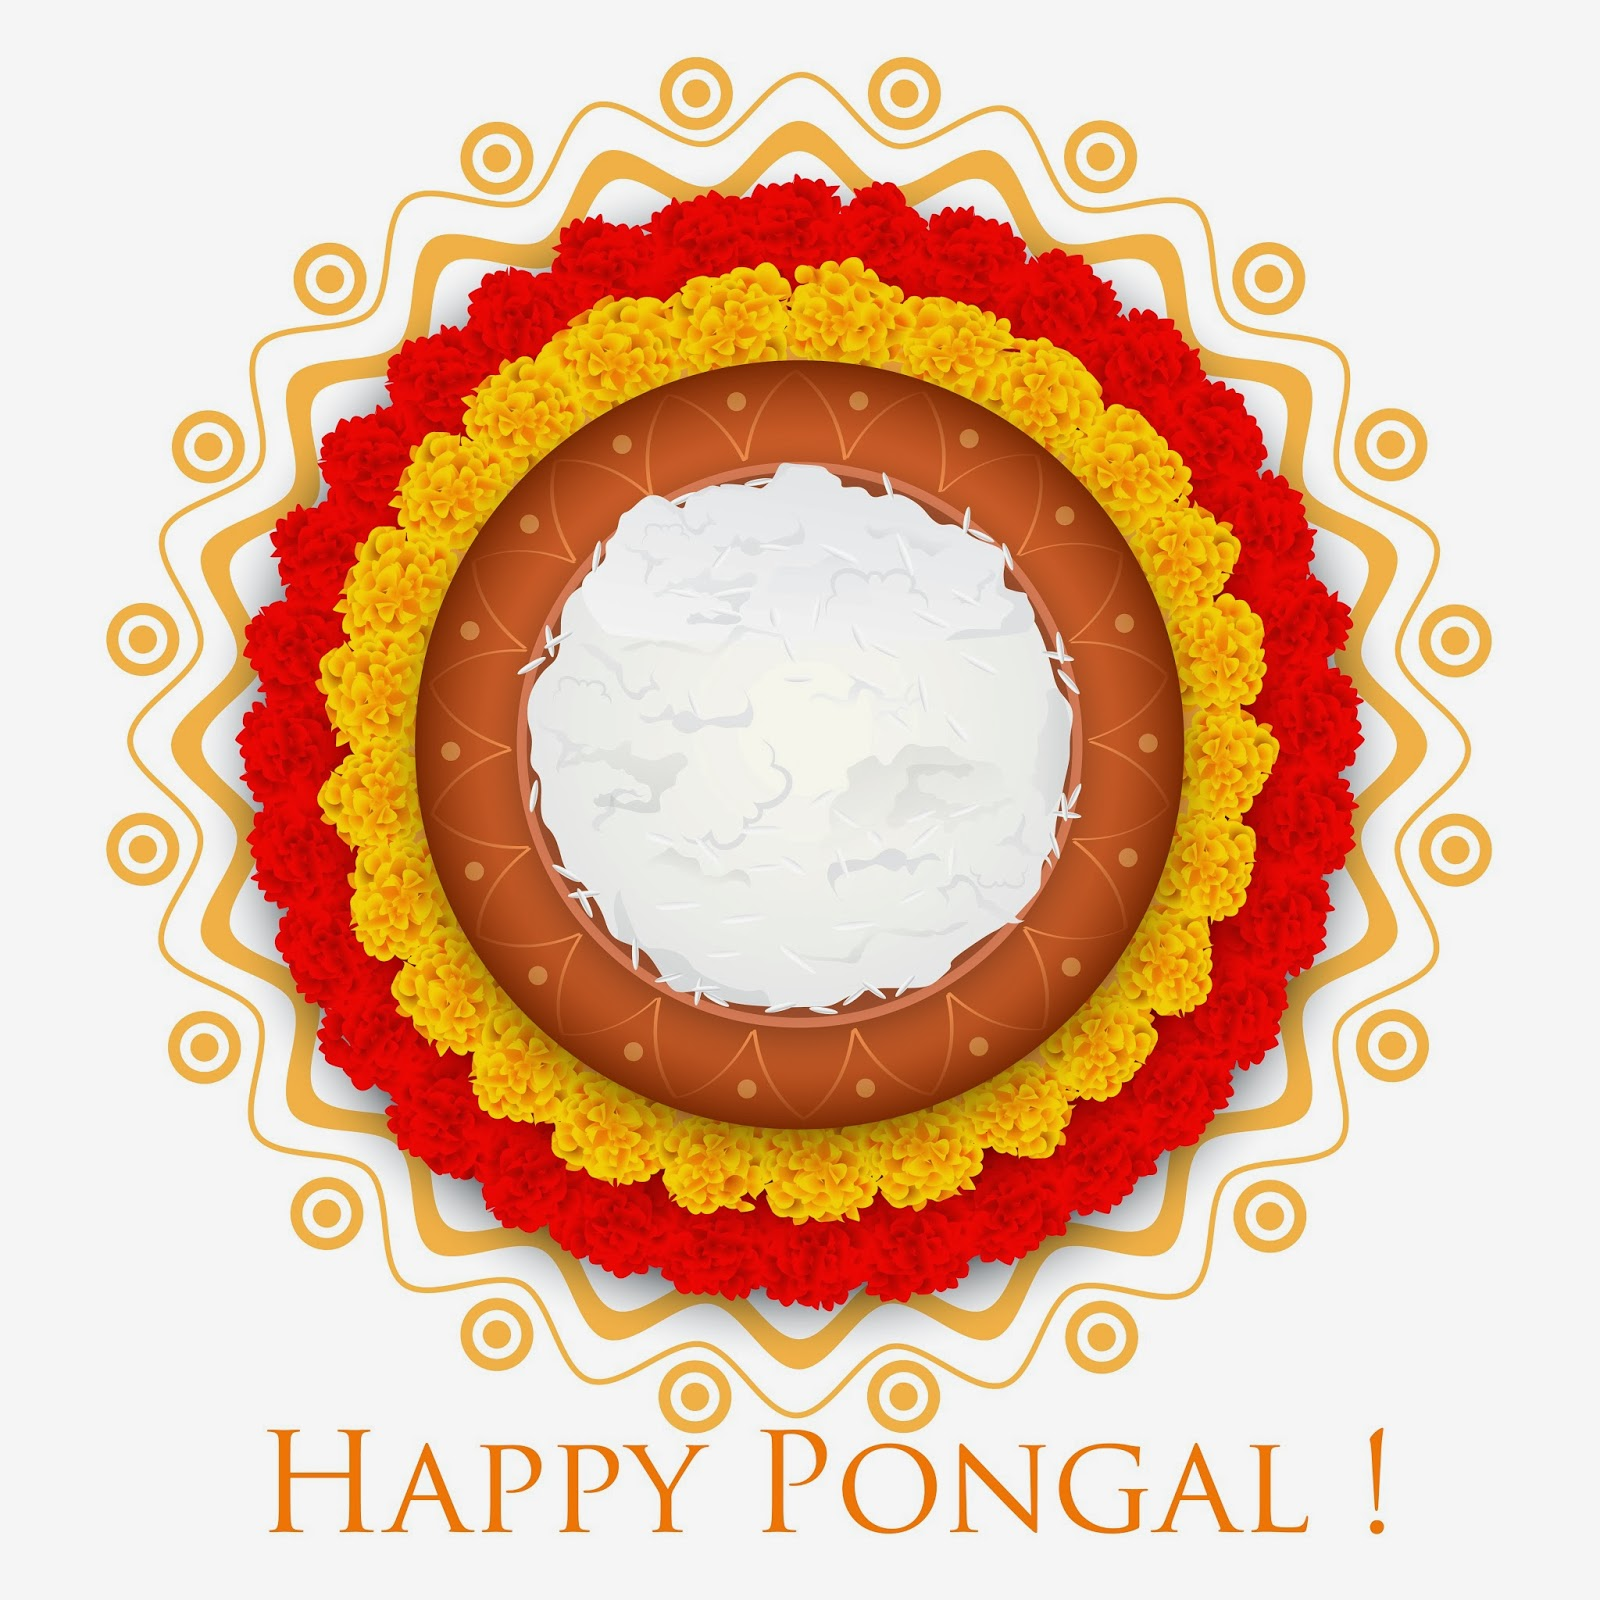 happy-sankranti-muggulu-hd-wallpapers-naveengfx.com